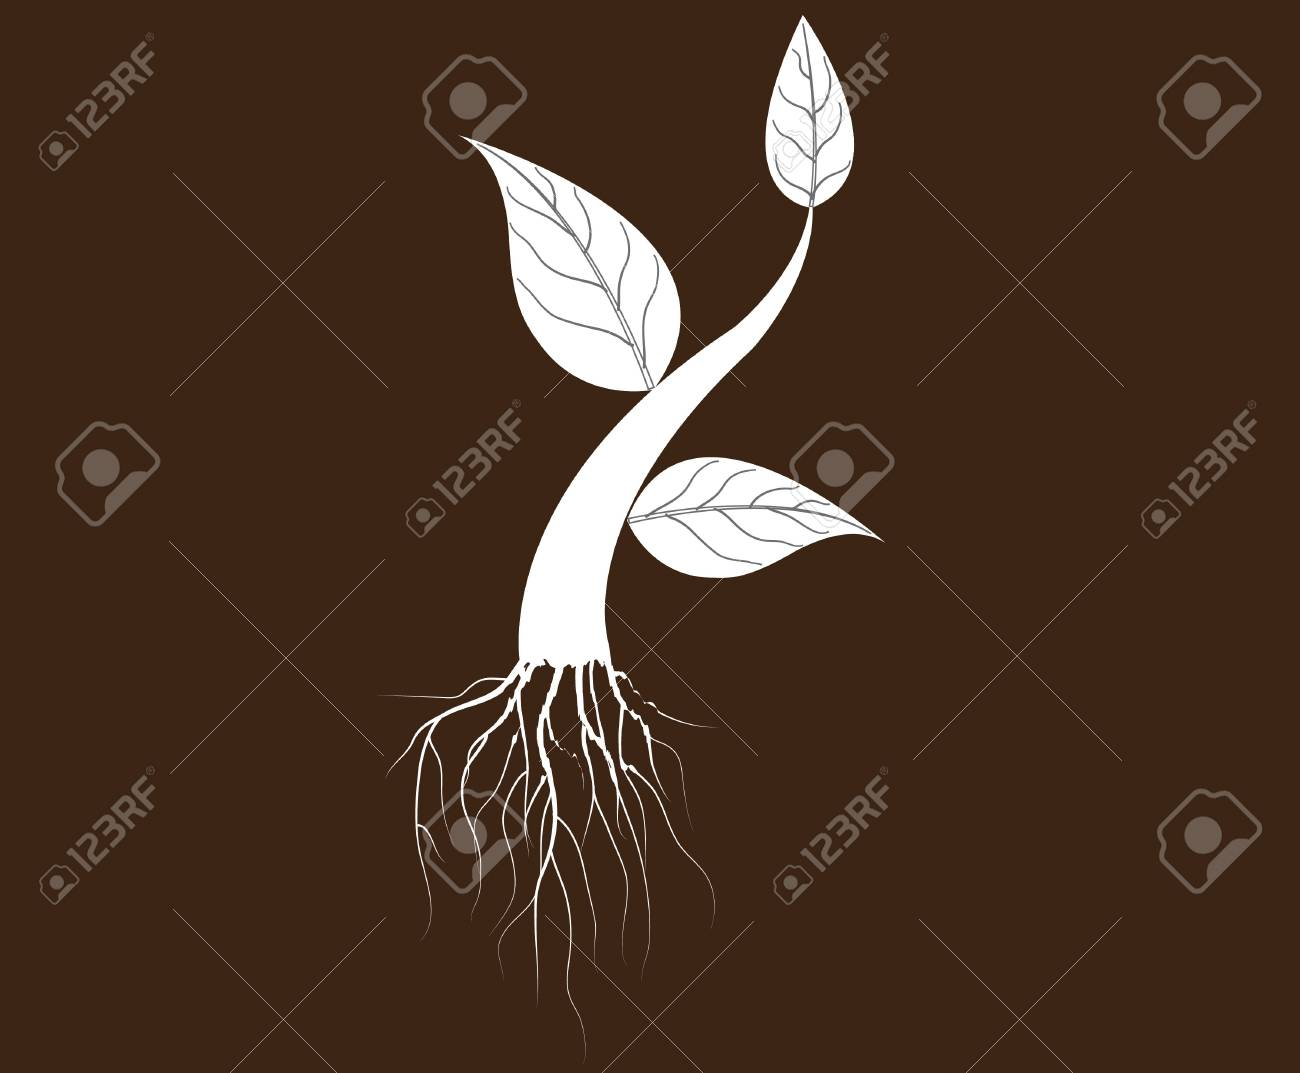 illustration of plant sapling growing on abstract background Stock Vector - 21637848